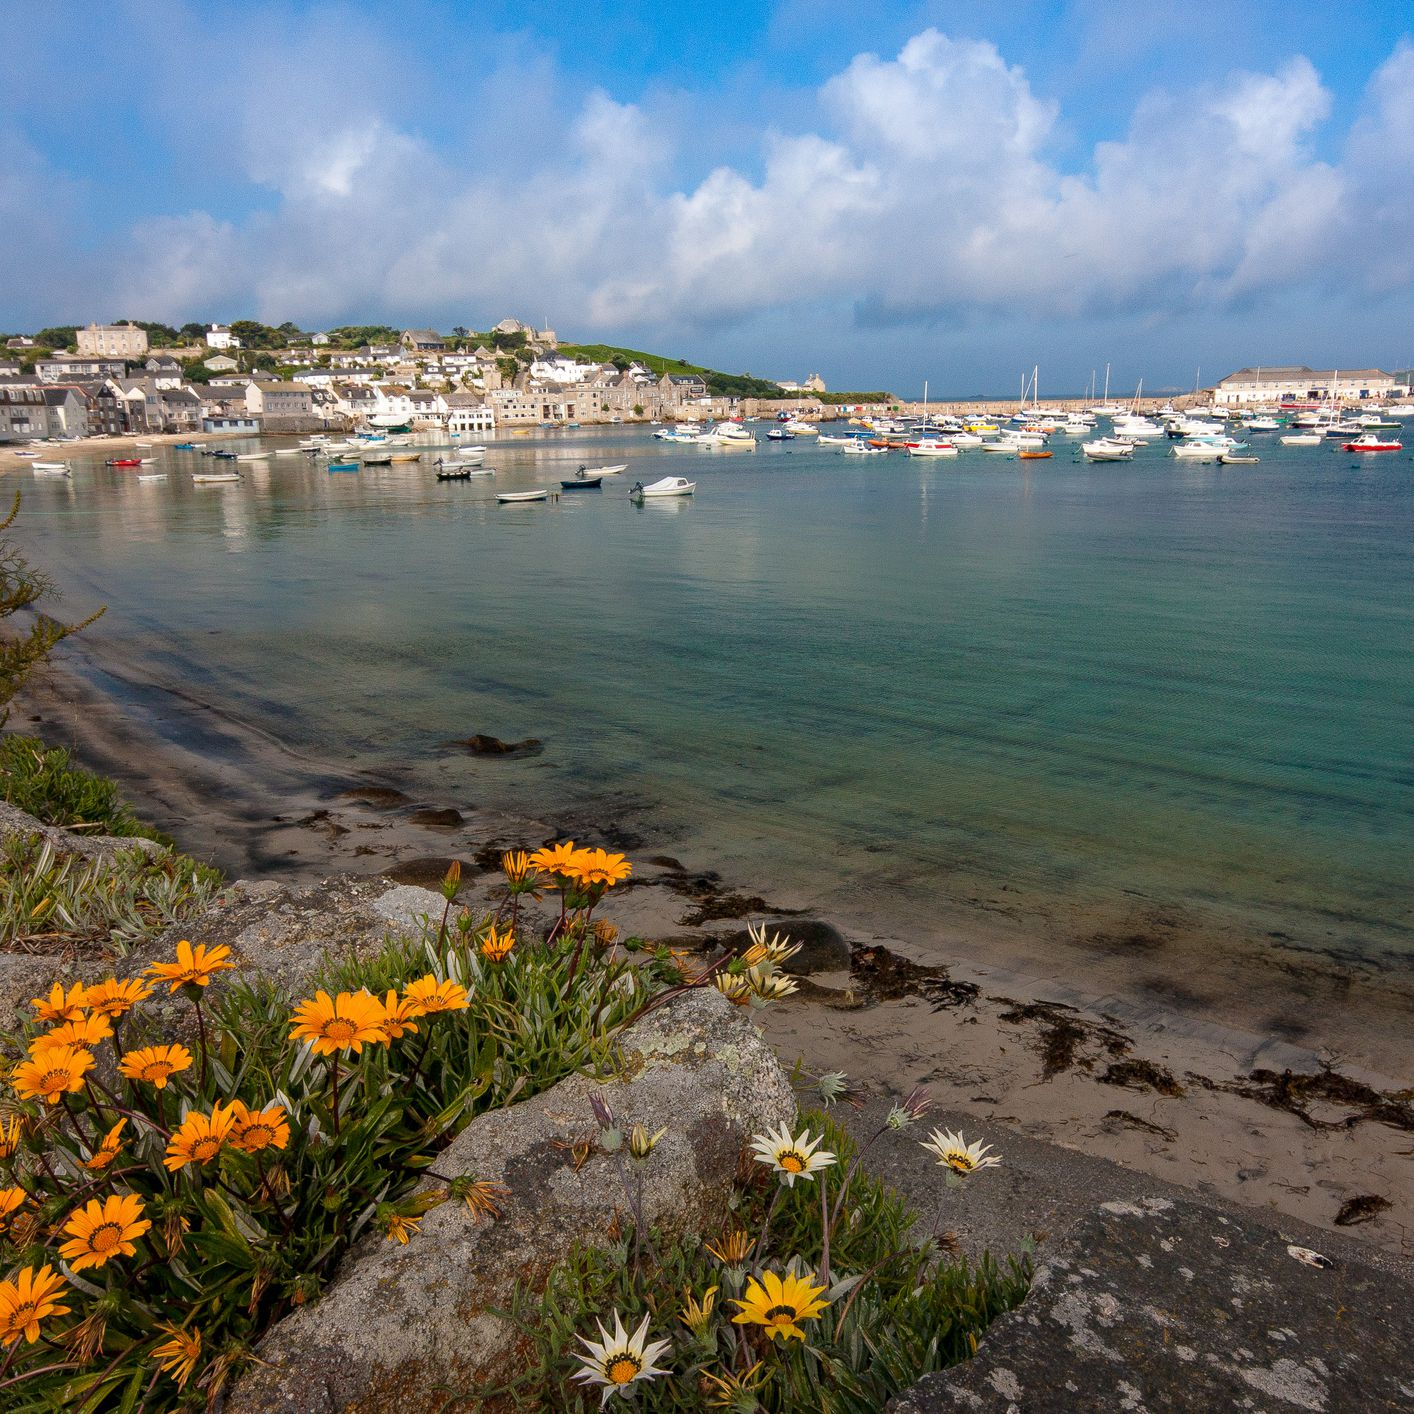 Isles of Scilly: The Complete Guide